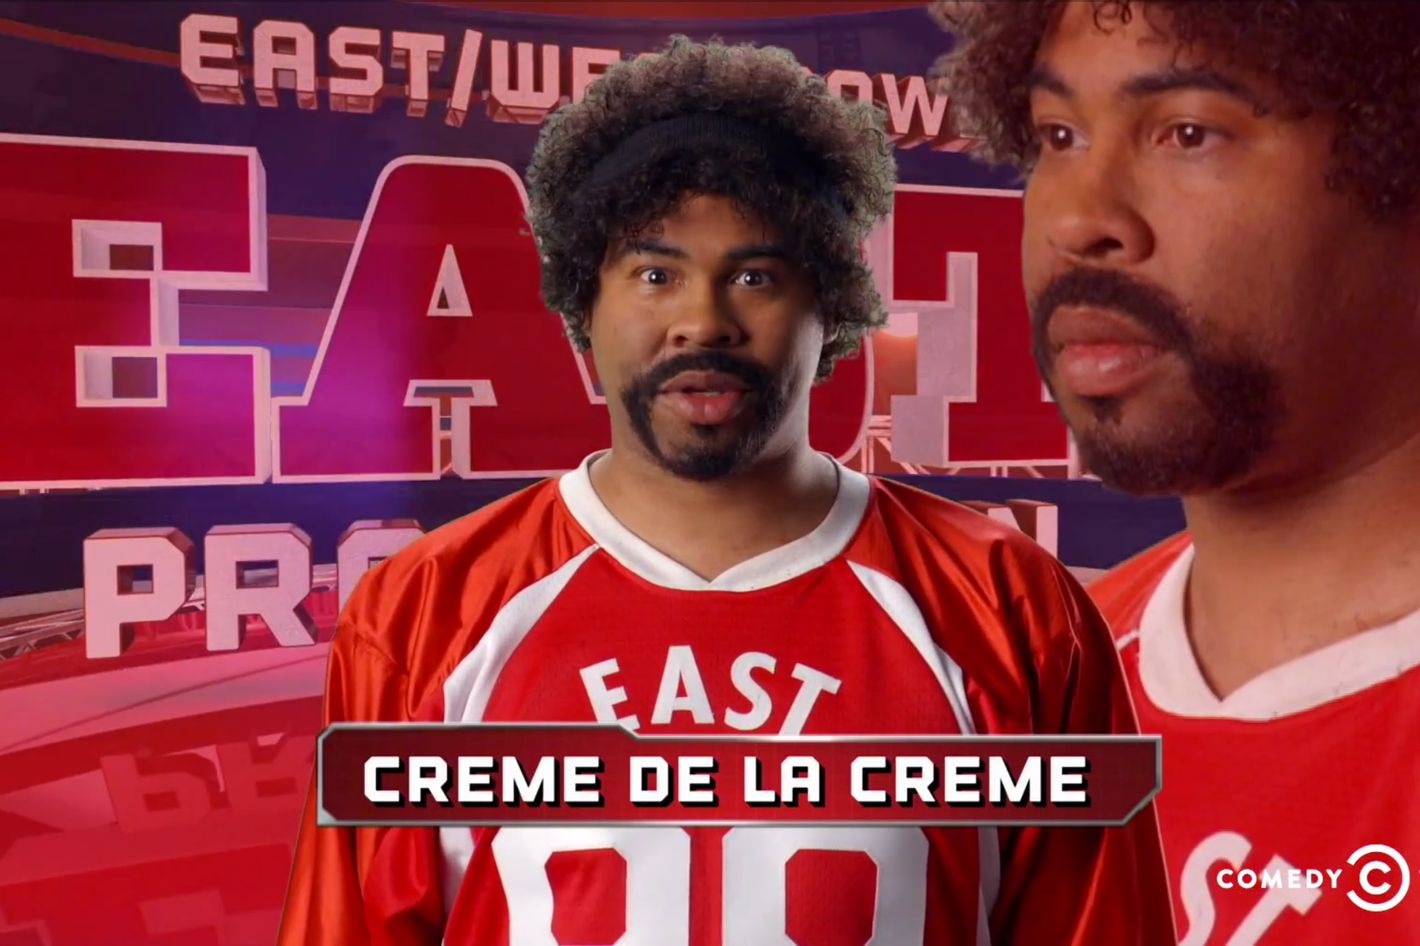 key and peele made up some more hilarious fake football-player names